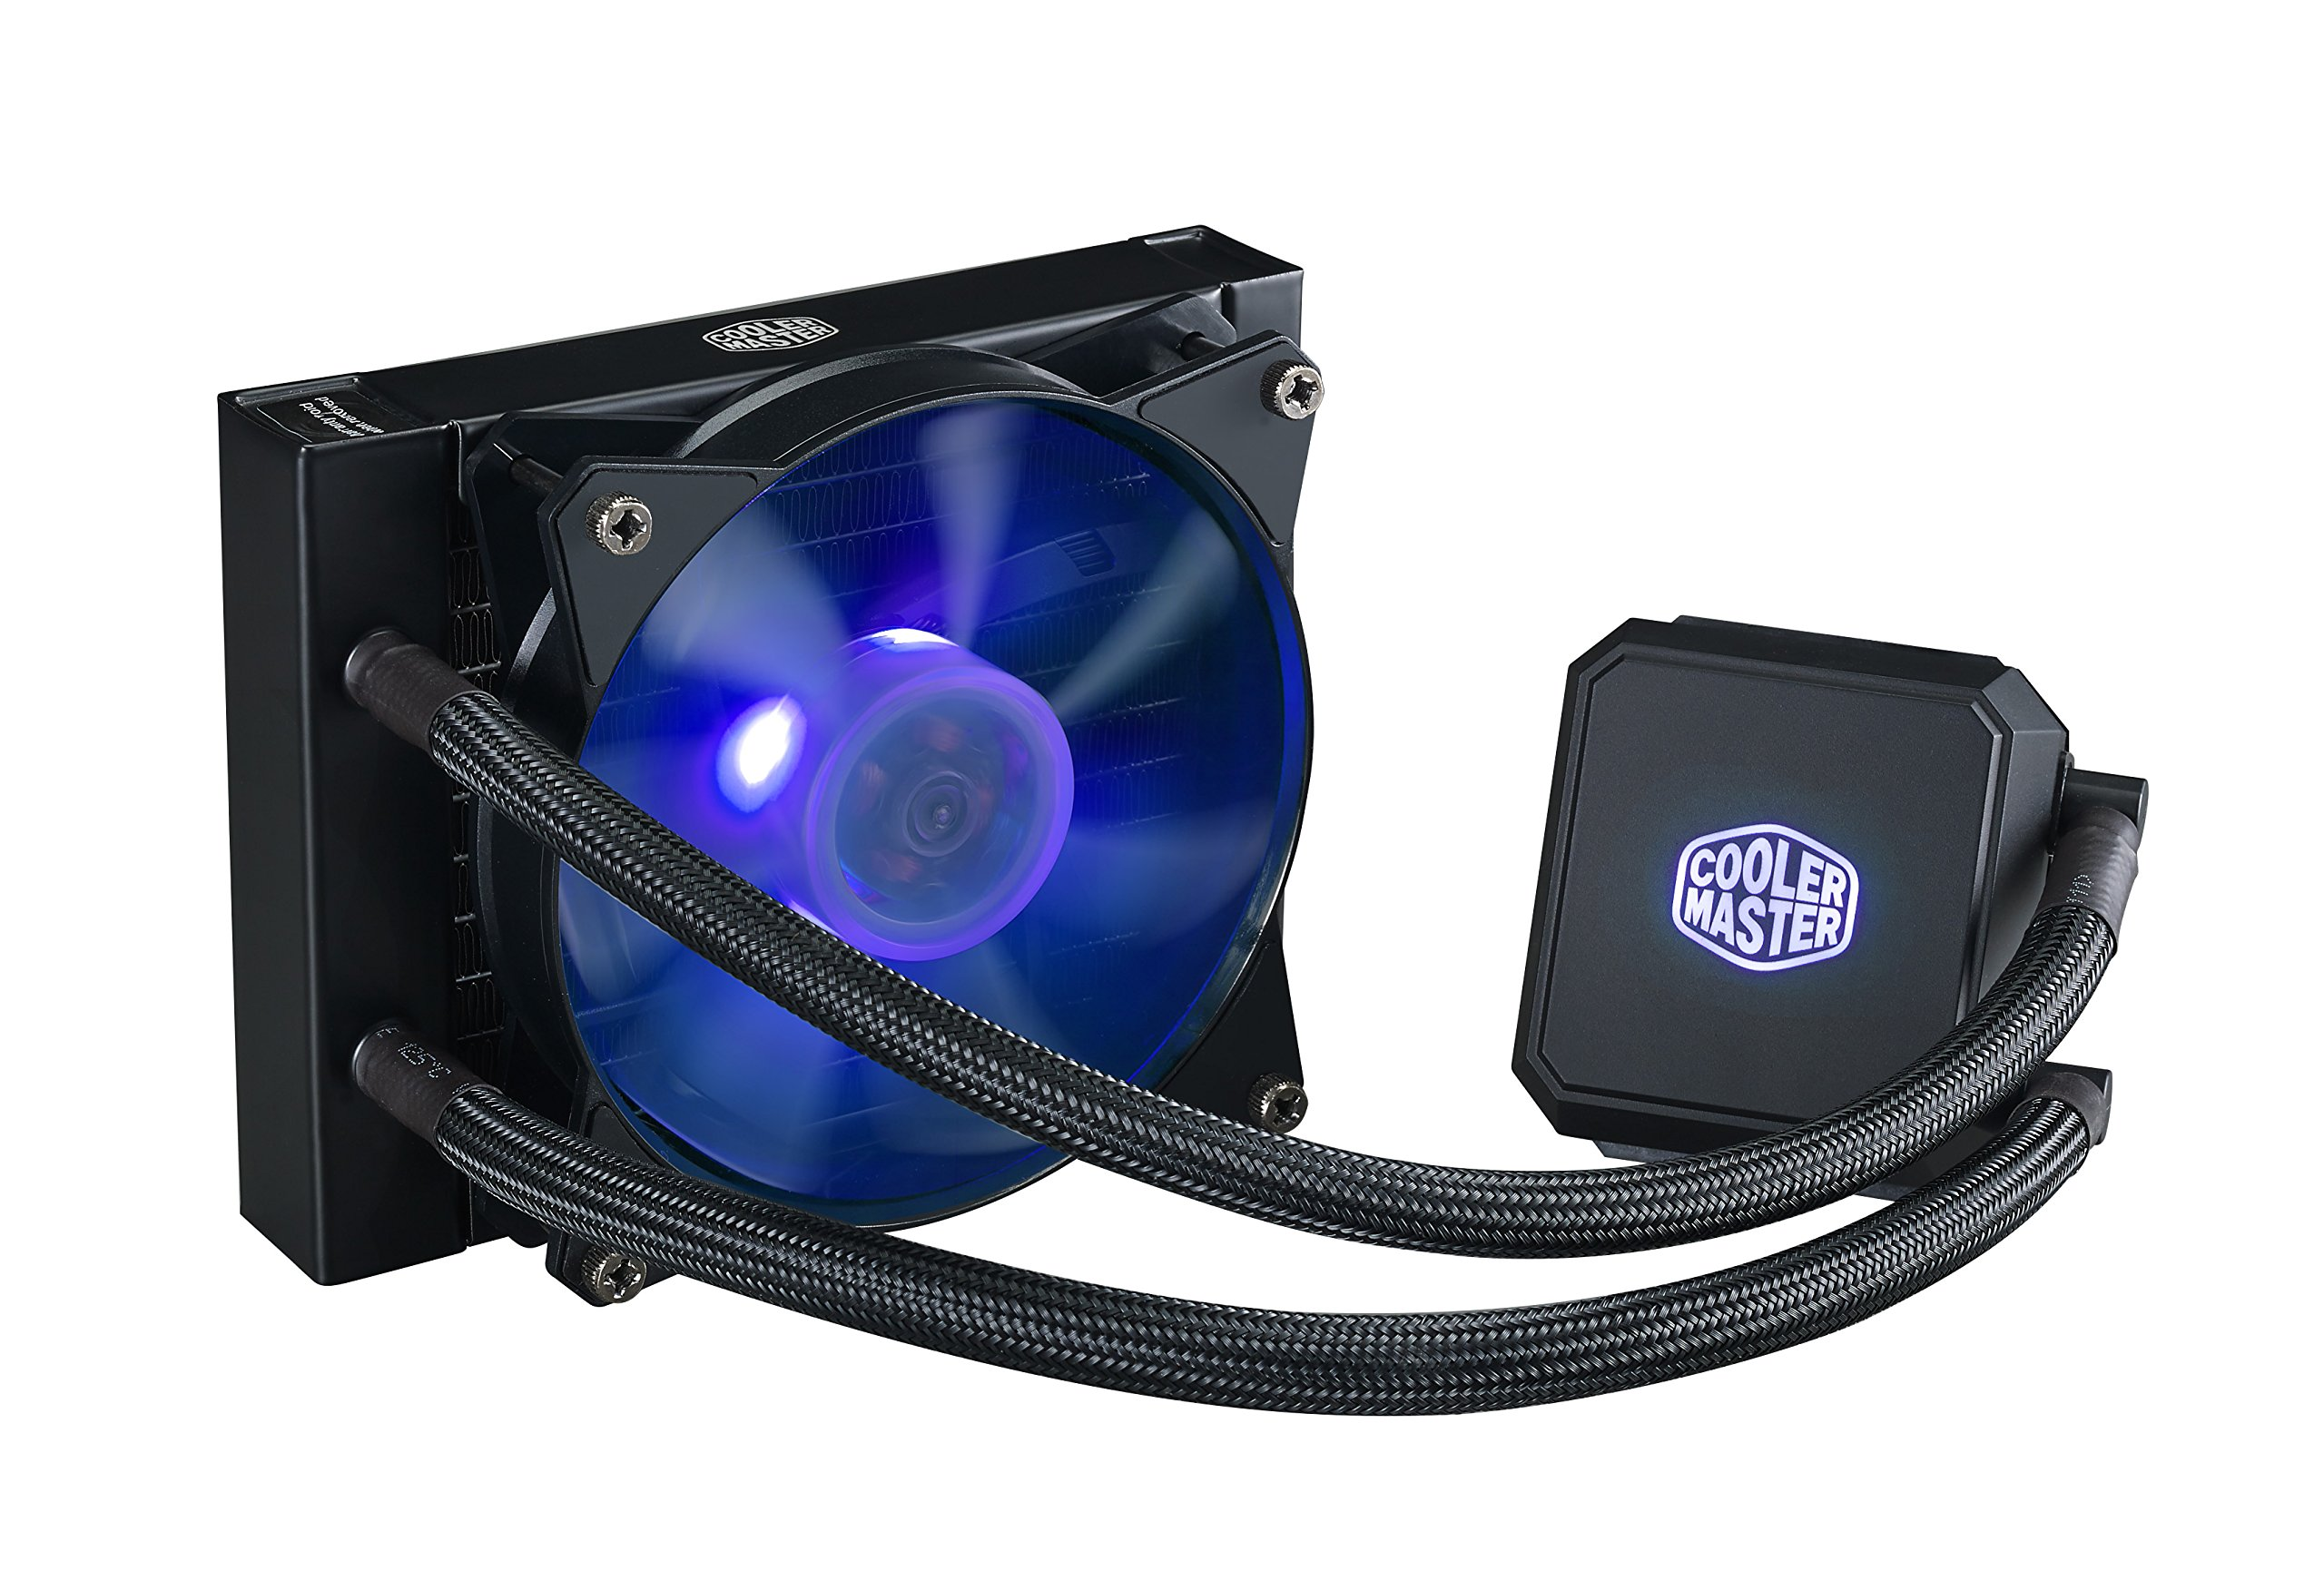 Cooler Master MasterLiquid LC120E RGB All-in-one CPU Liquid Cooler with Dual Chamber Pump Latest Intel/AMD Support (MLA-D12M-A18PC-R1)